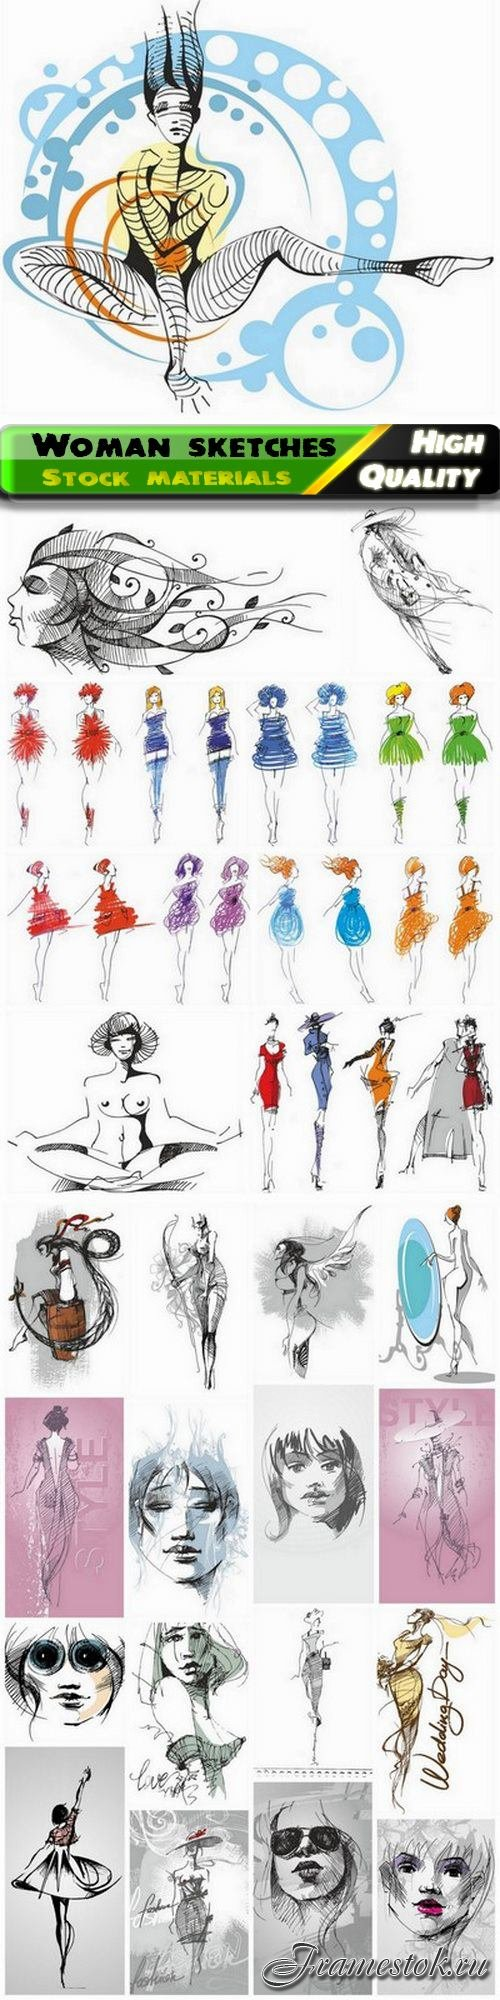 Fashion sketches of stylish woman and girl for beauty salon 25 Eps